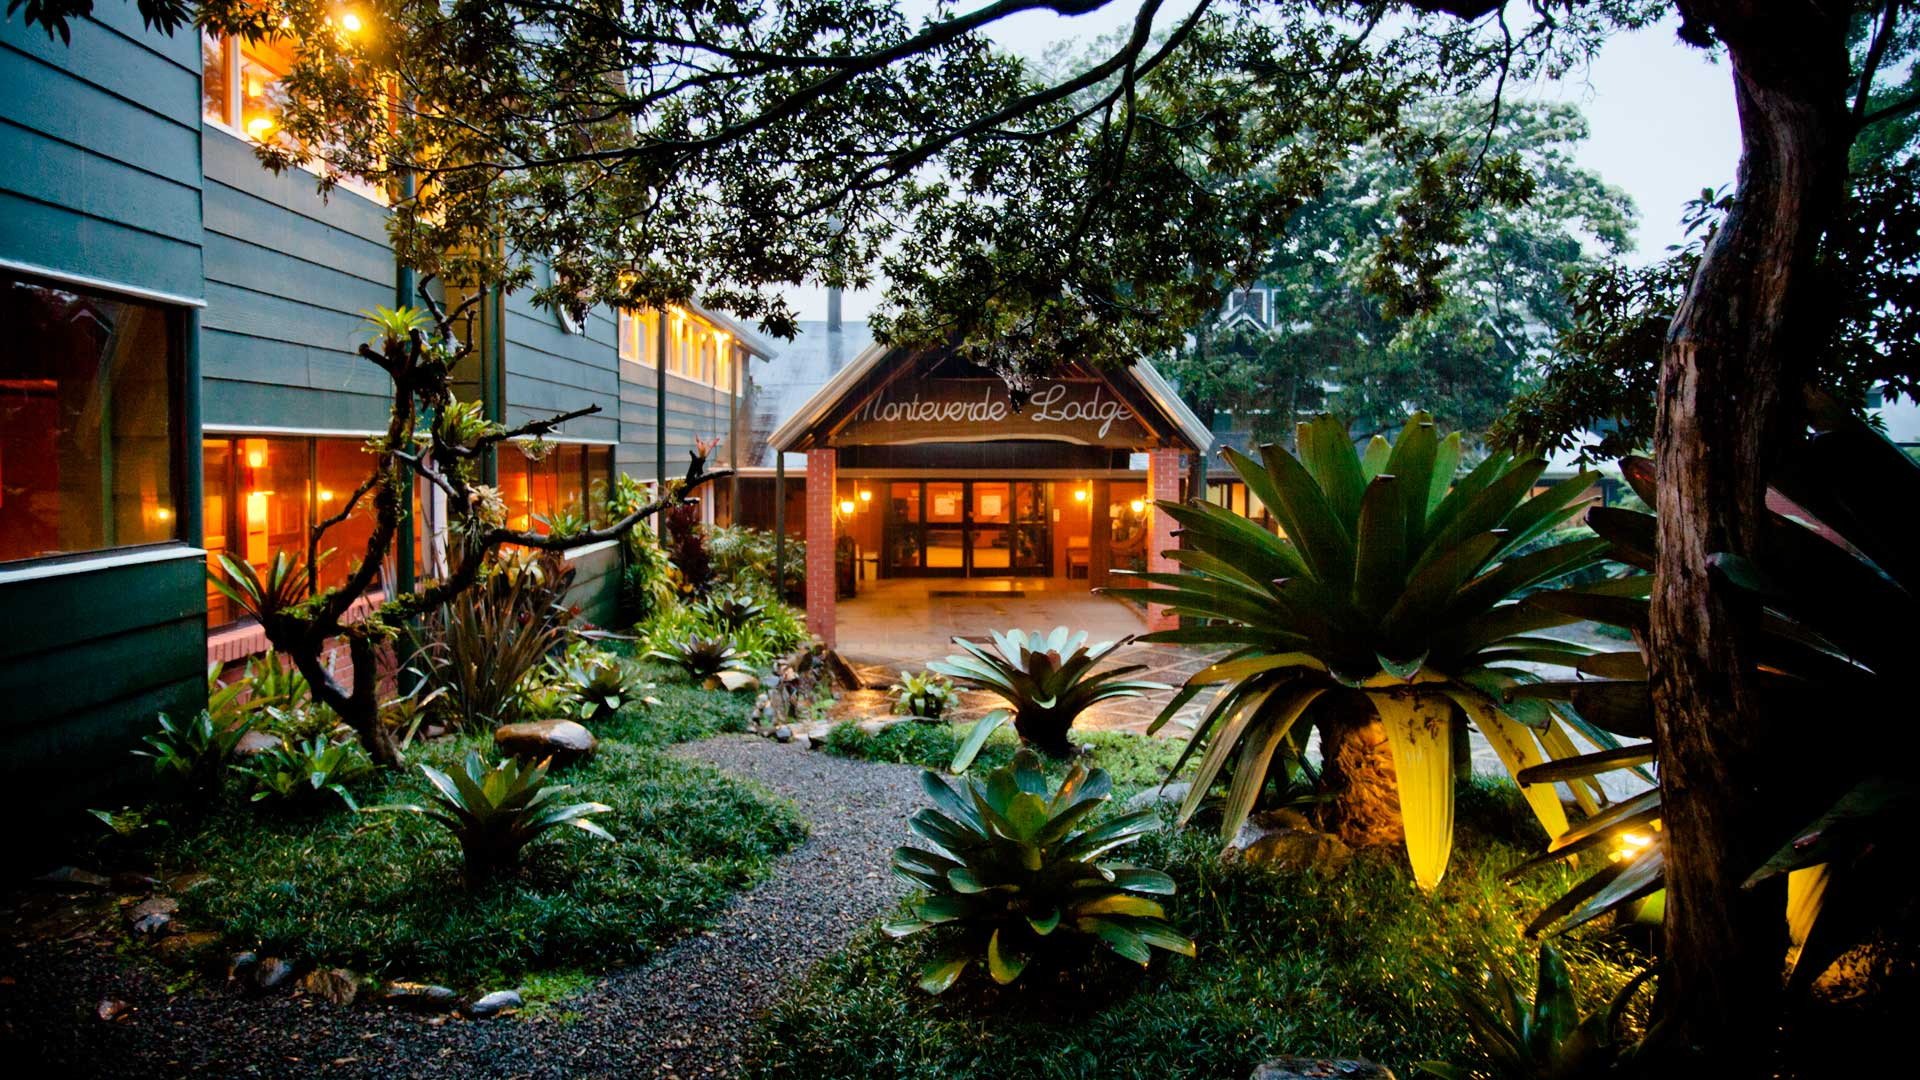 Monteverde Lodge, Costa Rica